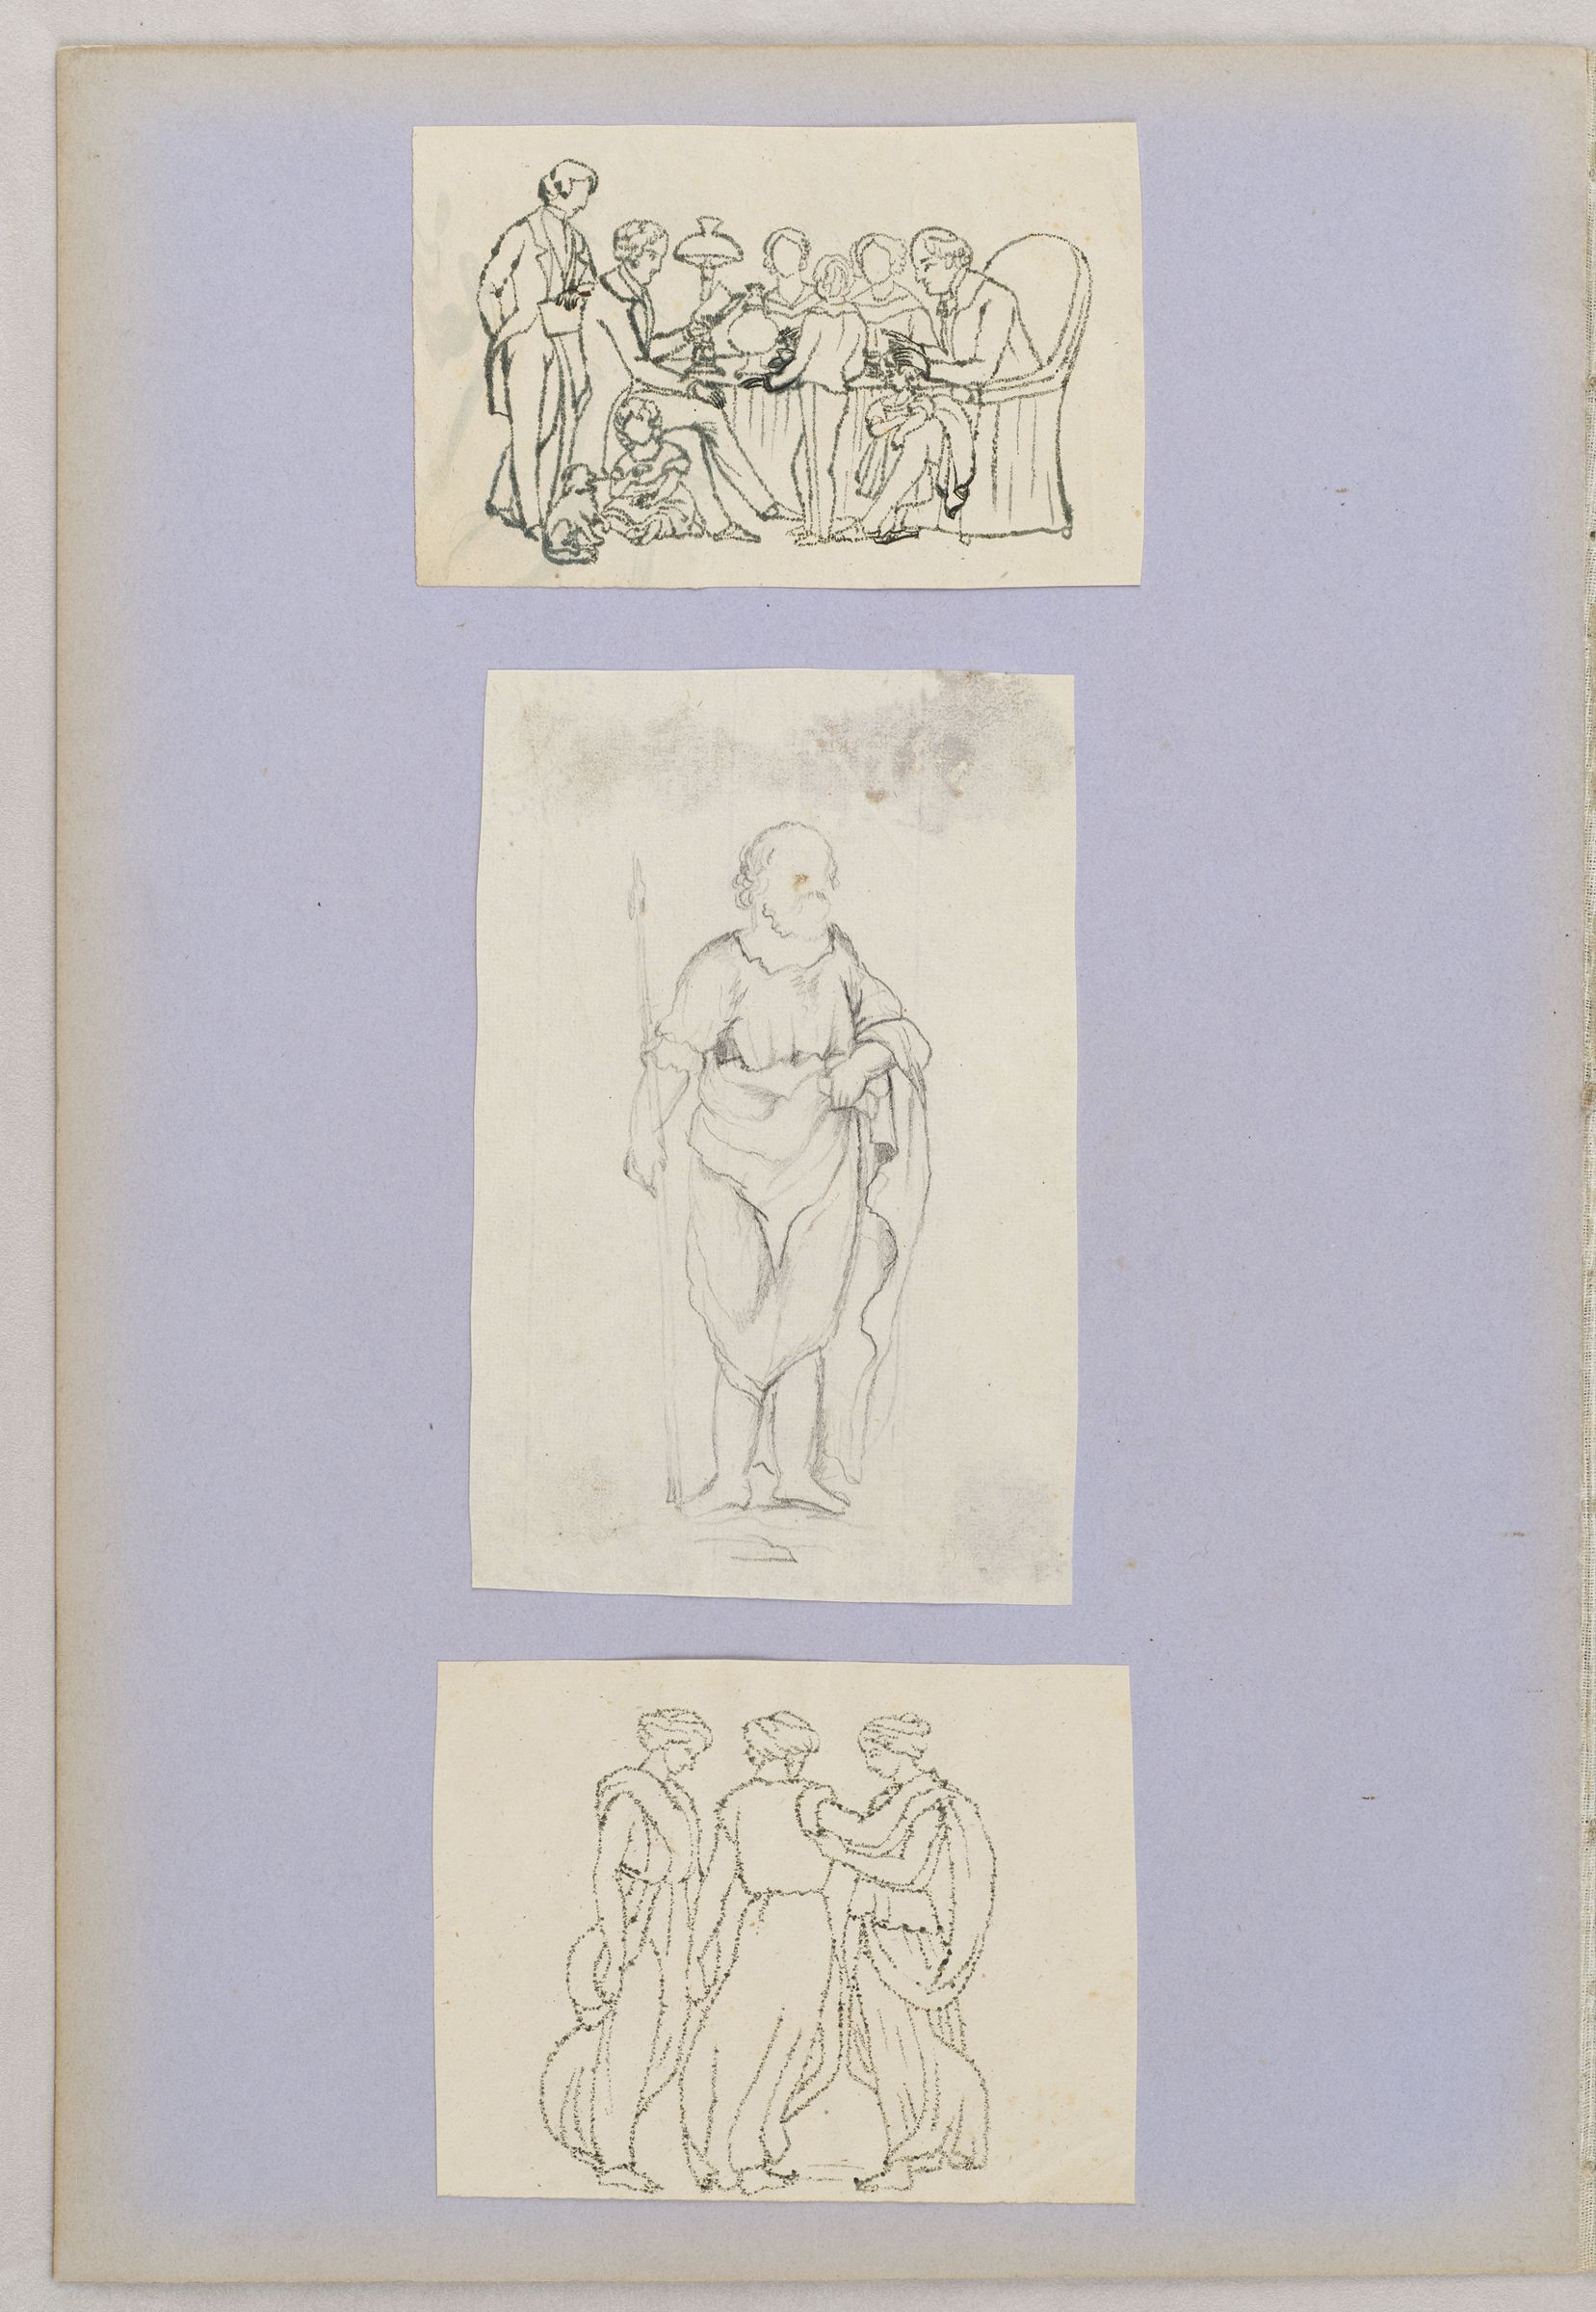 Folio 44 From An Album Of Drawings And Paintings: Three Sheets: European Family Gathered Around A Table; Bearded Man In Semi-Classical Garb; Three Graces (Recto); Blank Page (Verso)